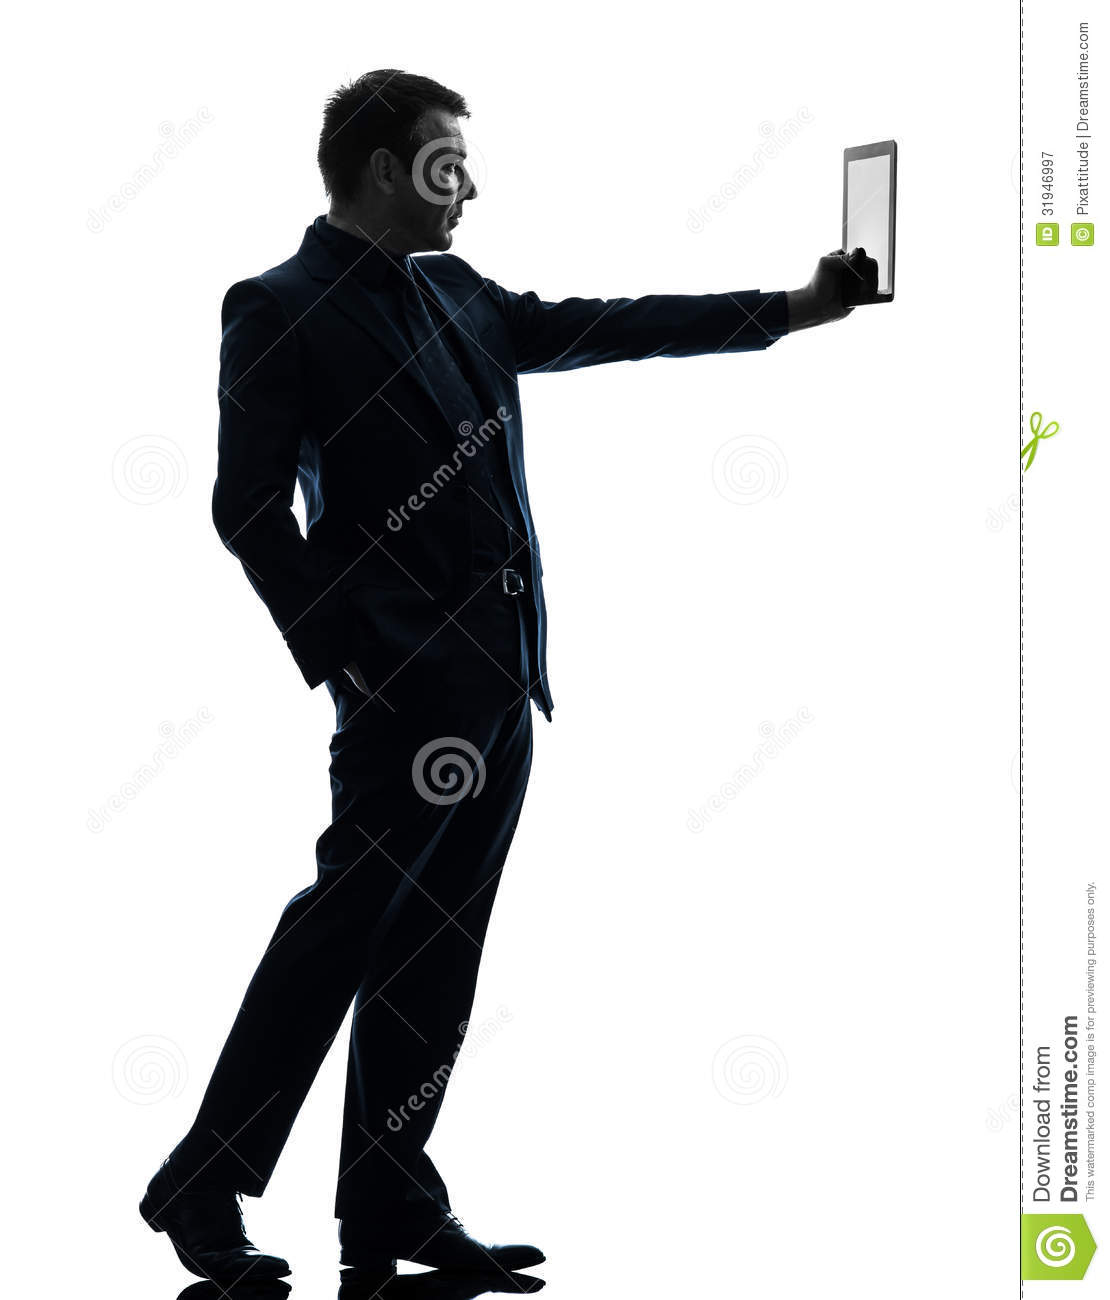 Business Man Digital Tablet Silhouette Stock Image - Image ...